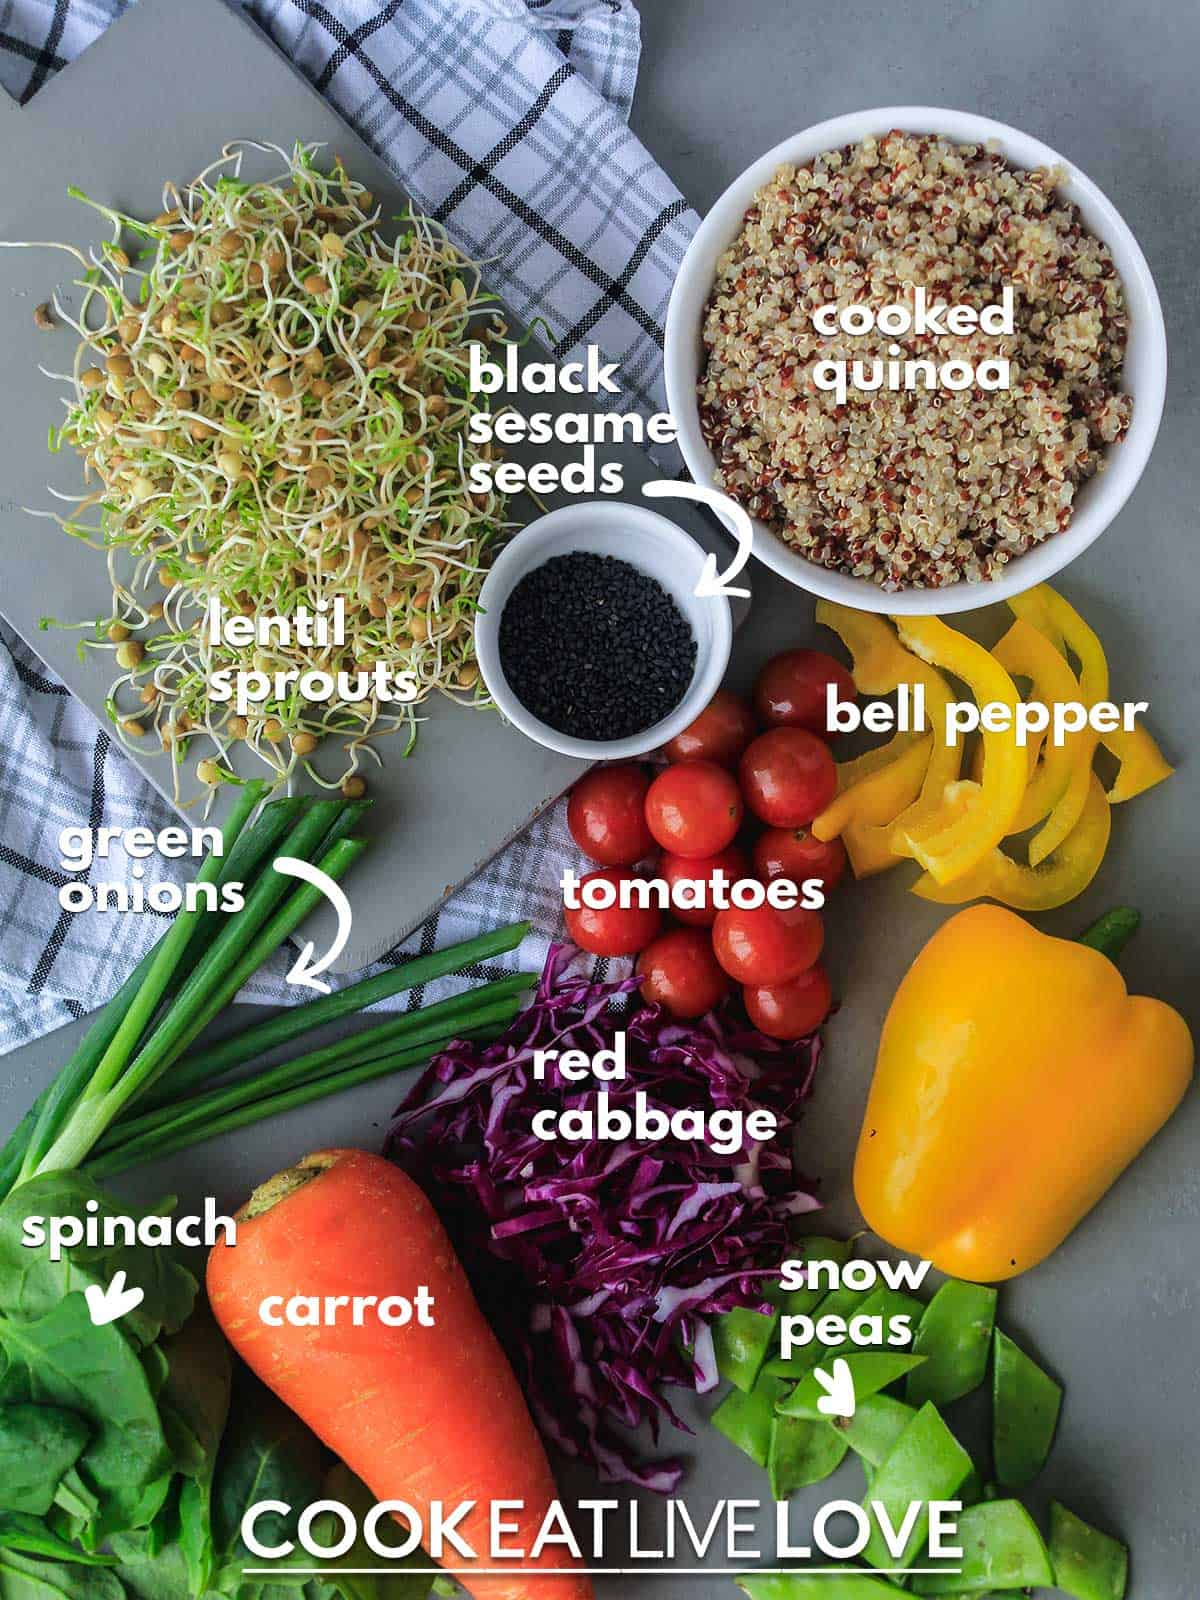 Ingredients you need to make this sprouted lentils recipe